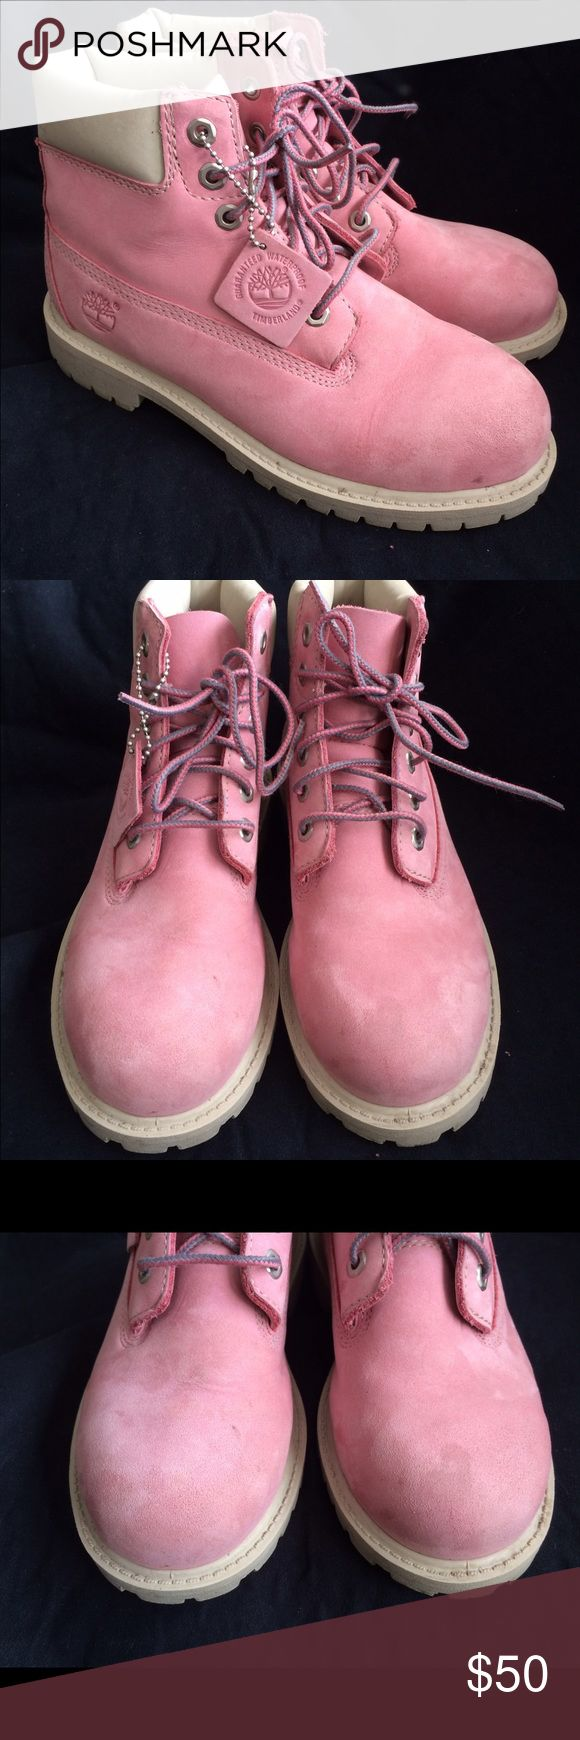 Girl's Timberland Boots Authentic Girl's Pink Timberland Boots. Light wear. Very Good Condition! Timberland Shoes Boots